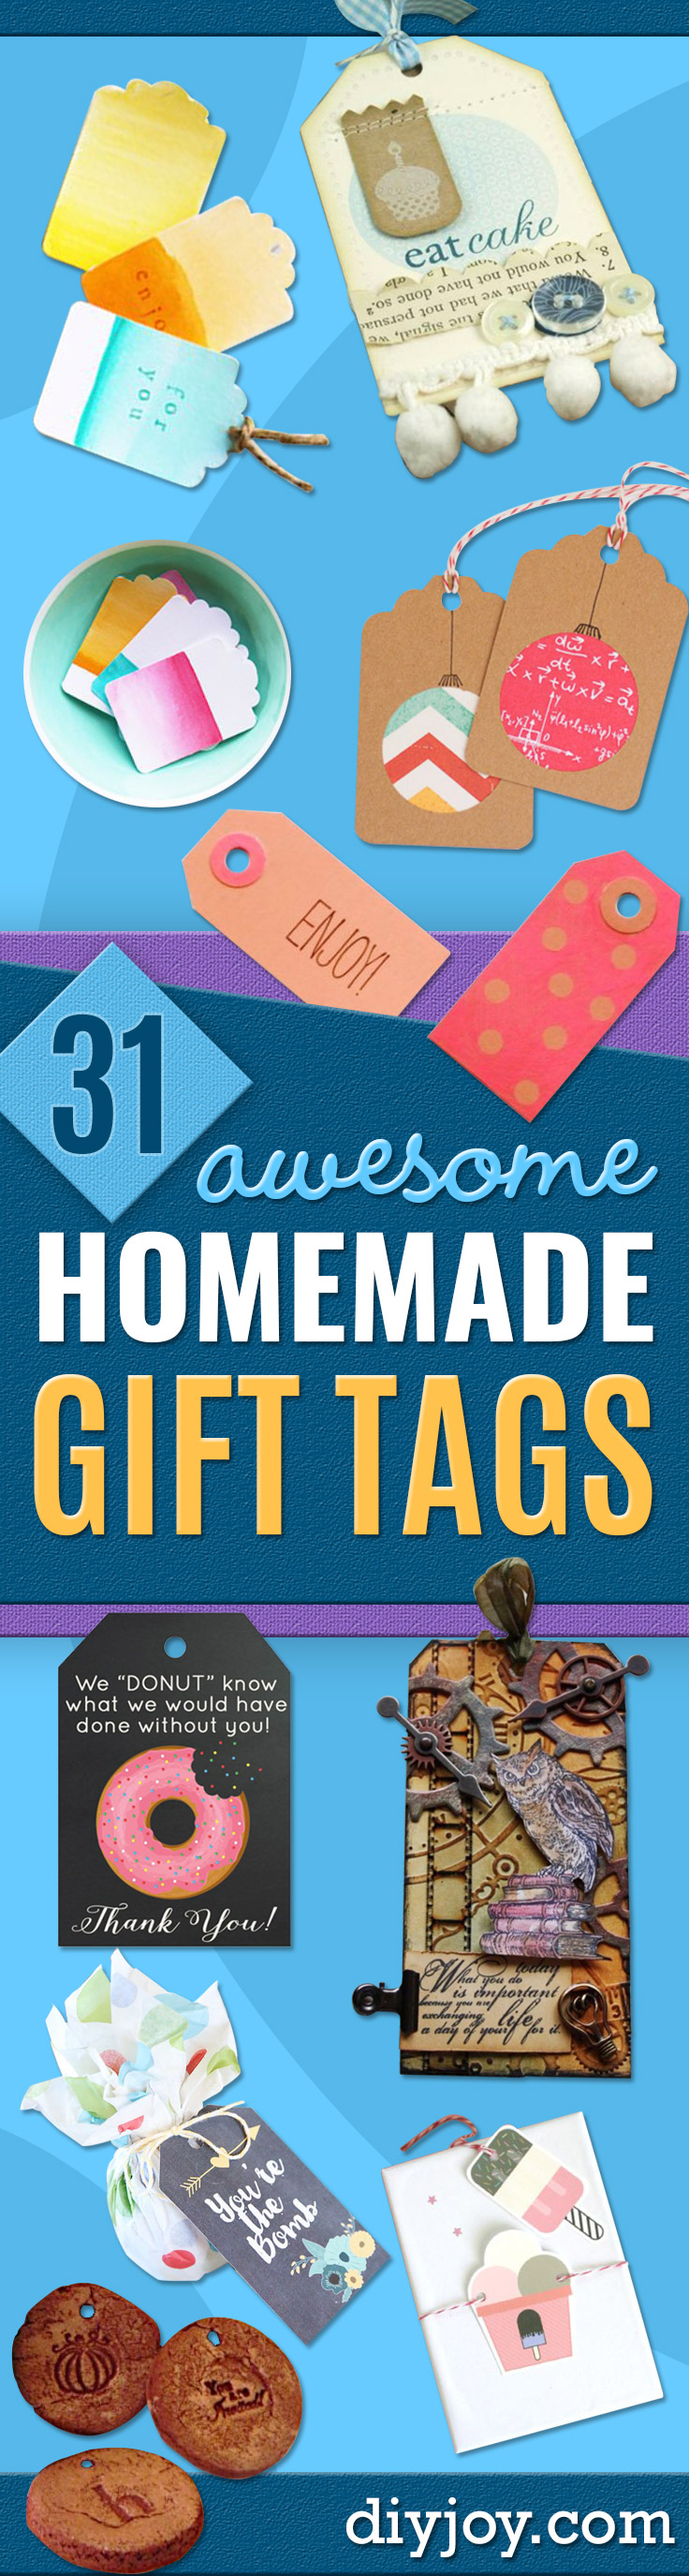 Homemade Gift Cards and Tags - DIY Gift Tags for Christmas Gifts - Easy and Cheap Ideas for Creative Handmade Birthday, Christmas, Mothers Day and Father Day Cards - Cute Holiday Gift Tags, Dollar Store Crafts, Homemade DIY Gifts and Gift Card Holders You Can Make at Home - Fun Crafts for Adults, Kids and Teens